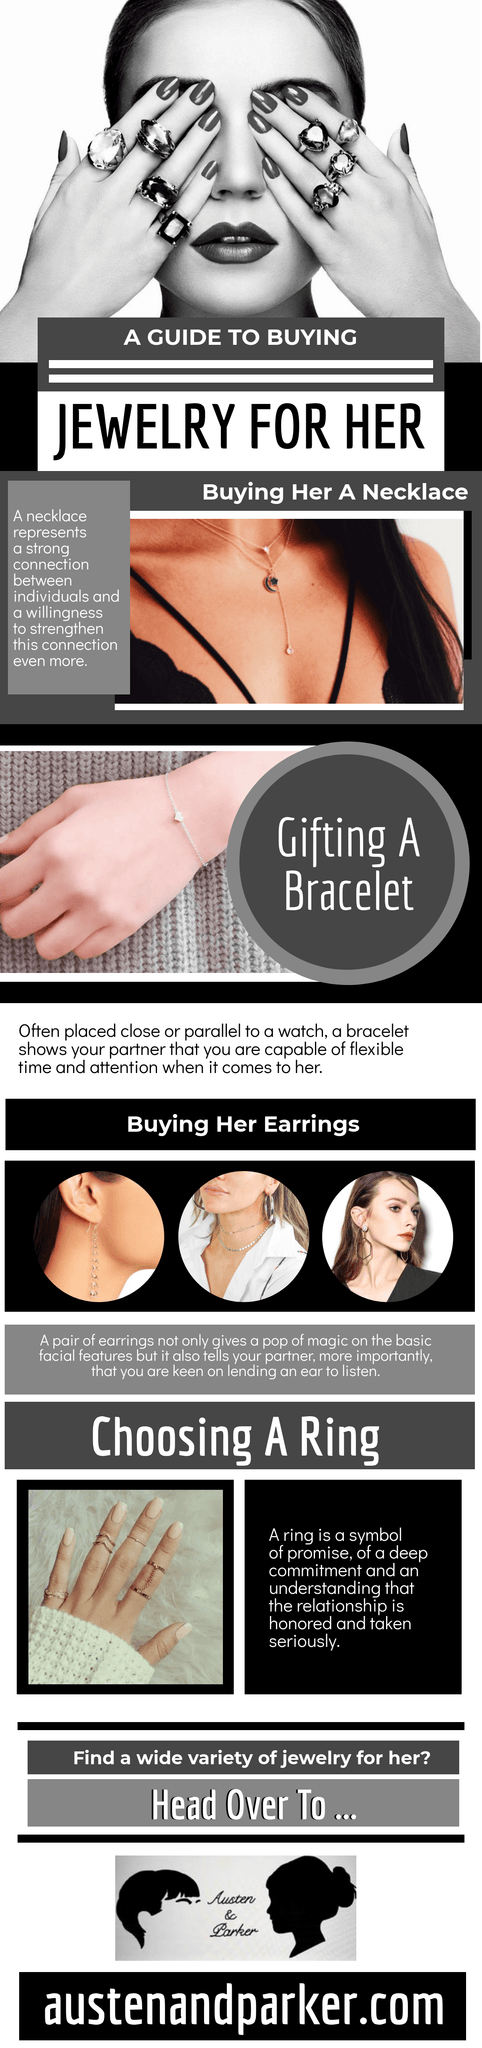 A Guide to Buying Jewlery for Her